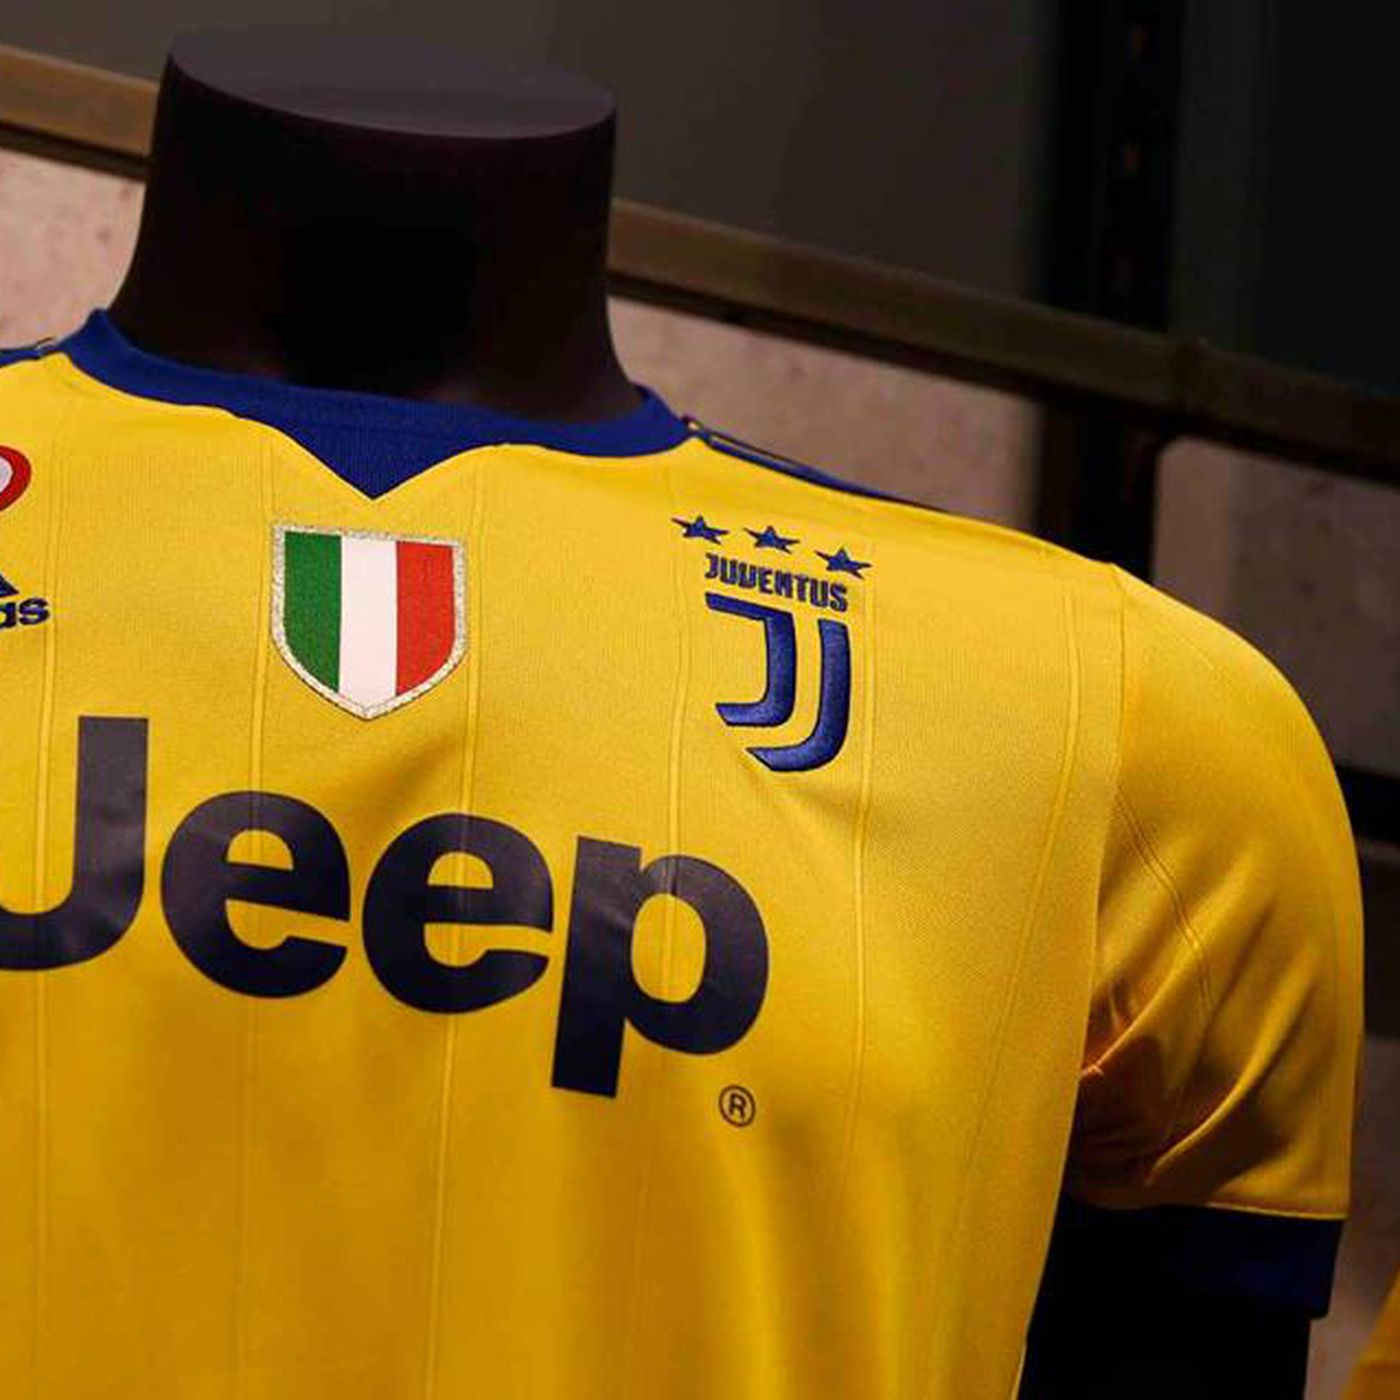 Juventus New 2017 18 Adidas Away Kit Has Officially Arrived And It S Beautiful Black White Read All Over